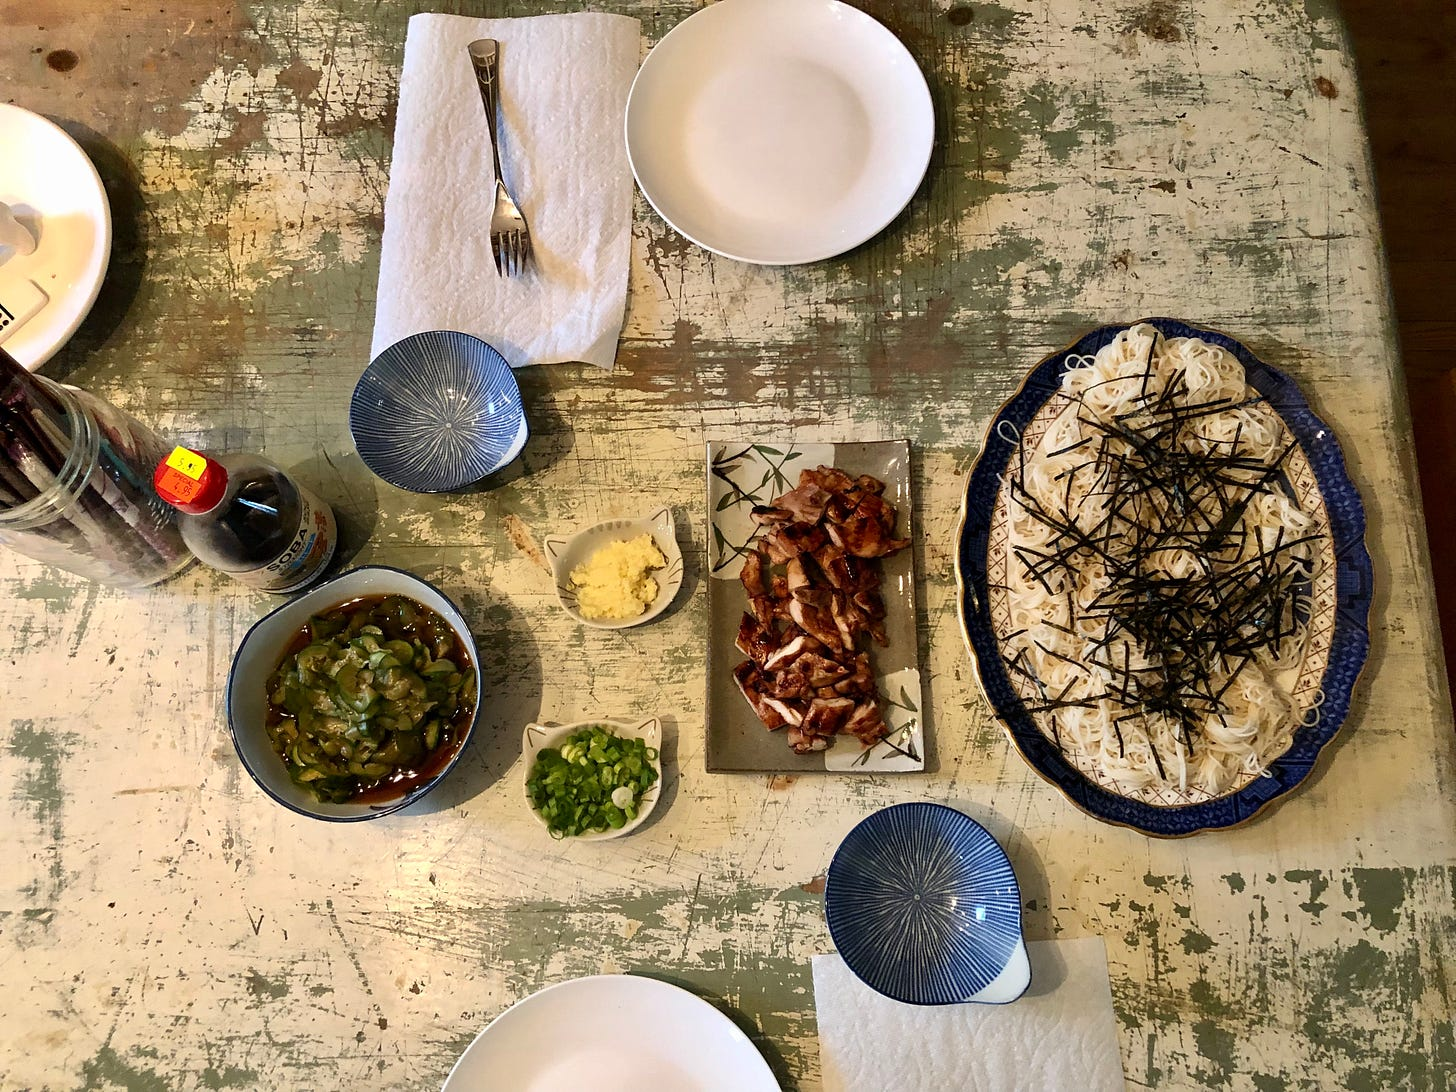 Overhead shot of a table with dishes of cold somen noodles, grilled chicken, and vinegared cucumber slices. There's also a bottle of store-bought dipping sauce for the noodles.